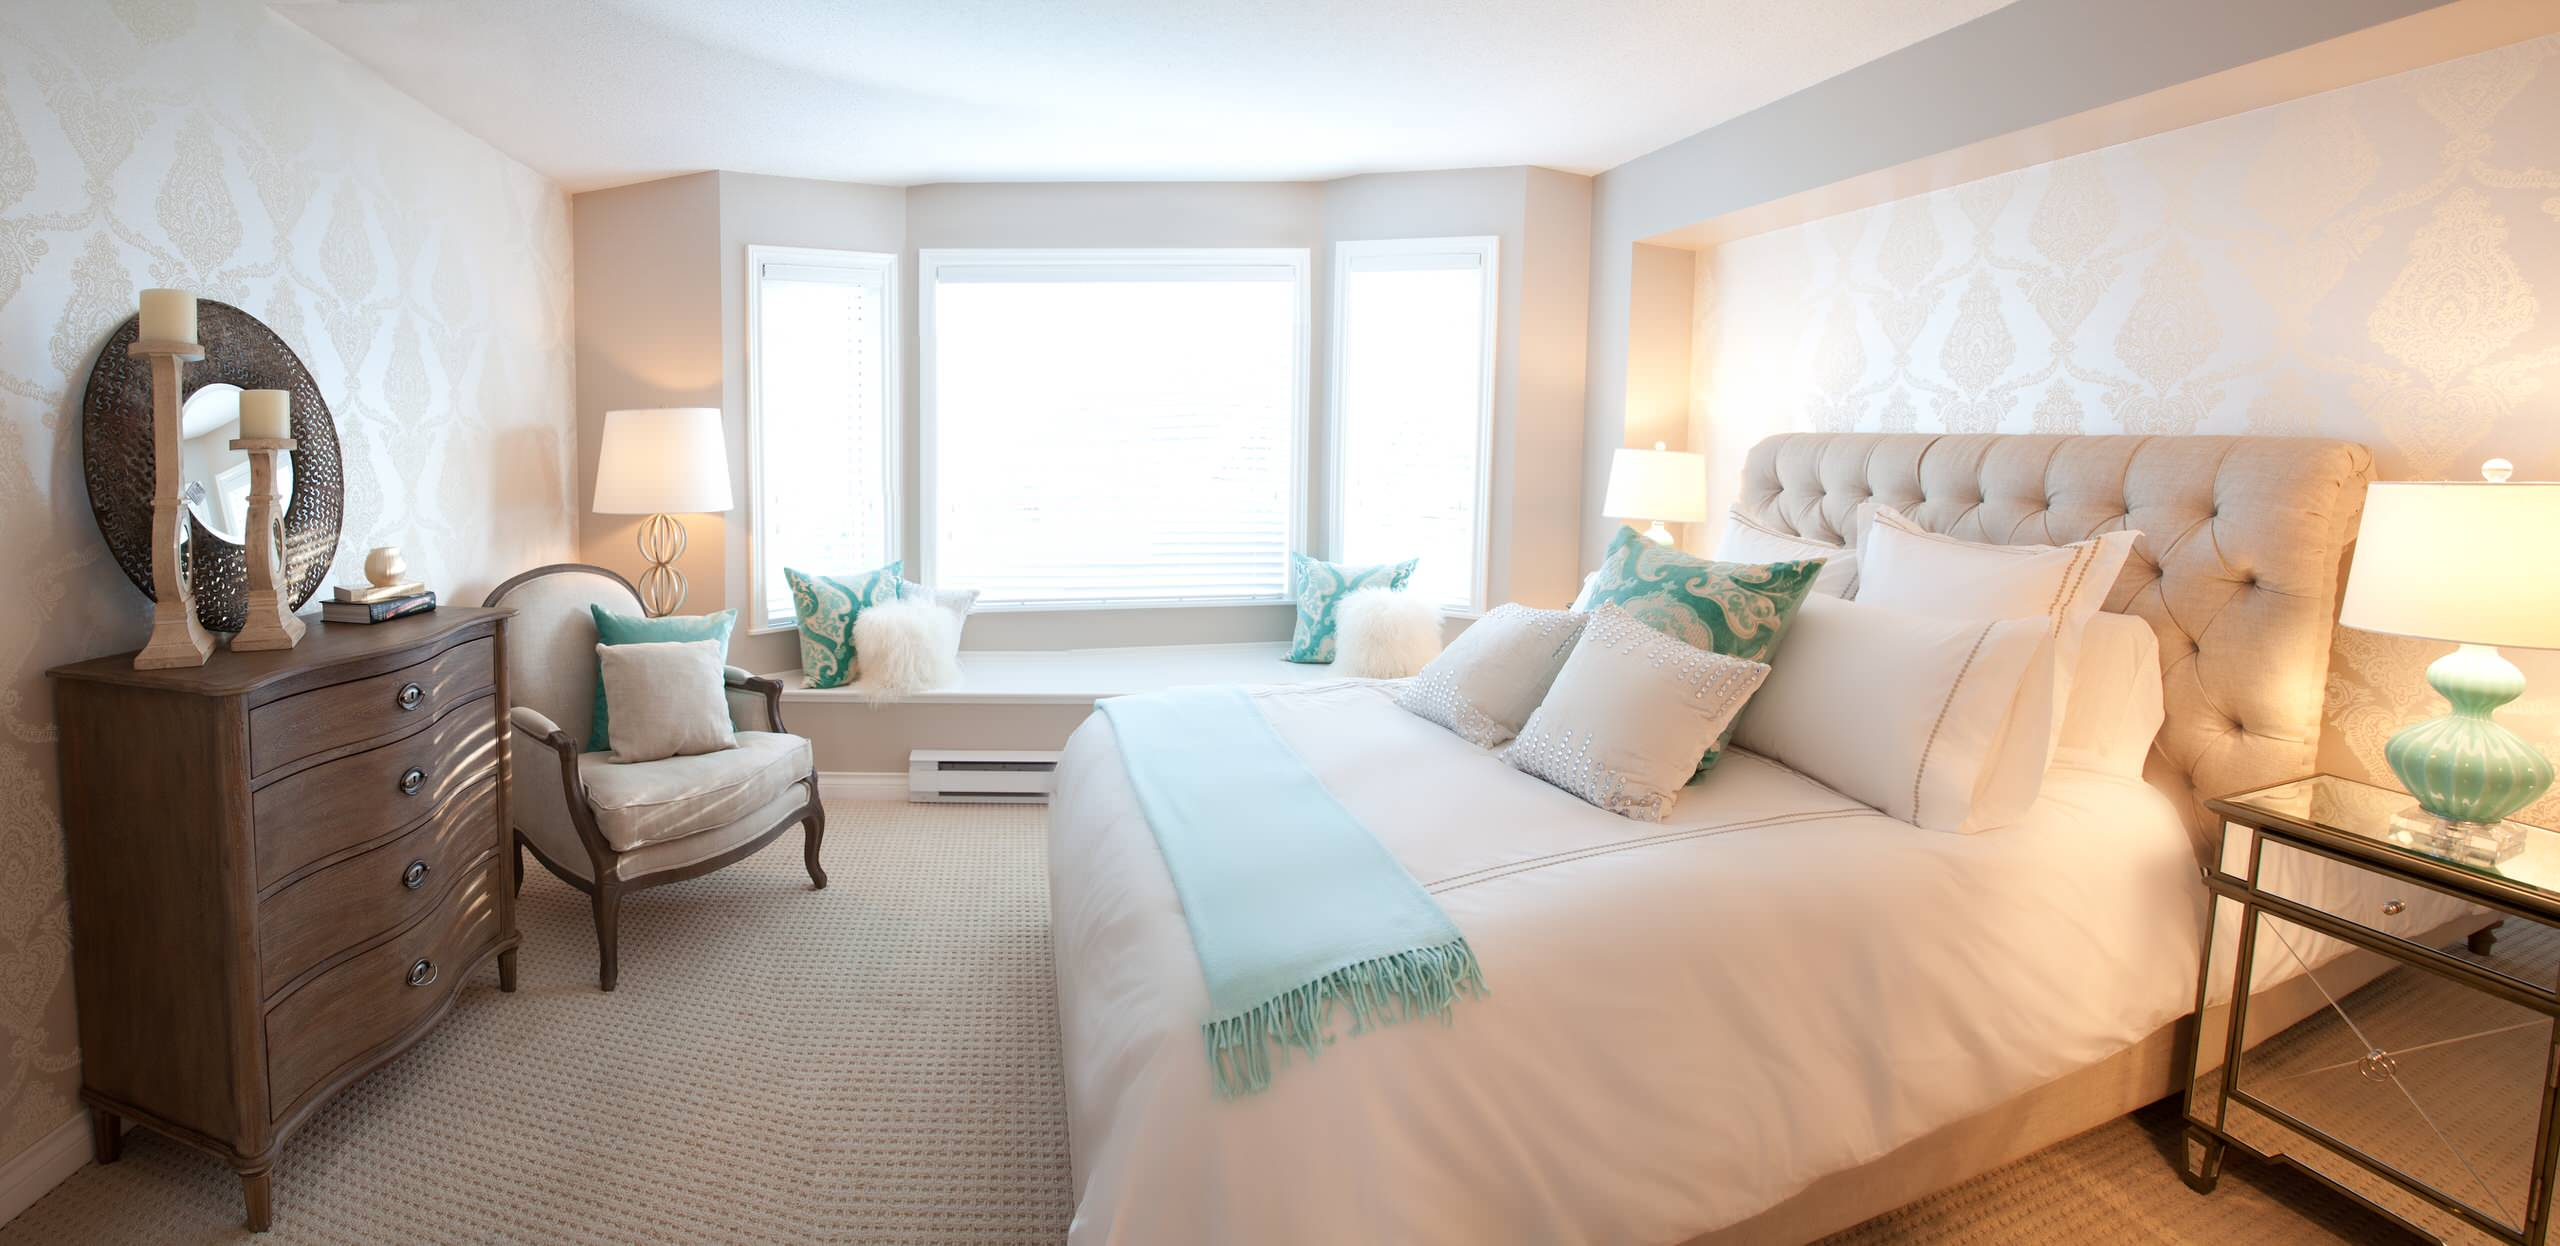 Peach And Turquoise Bedrooms Houzz